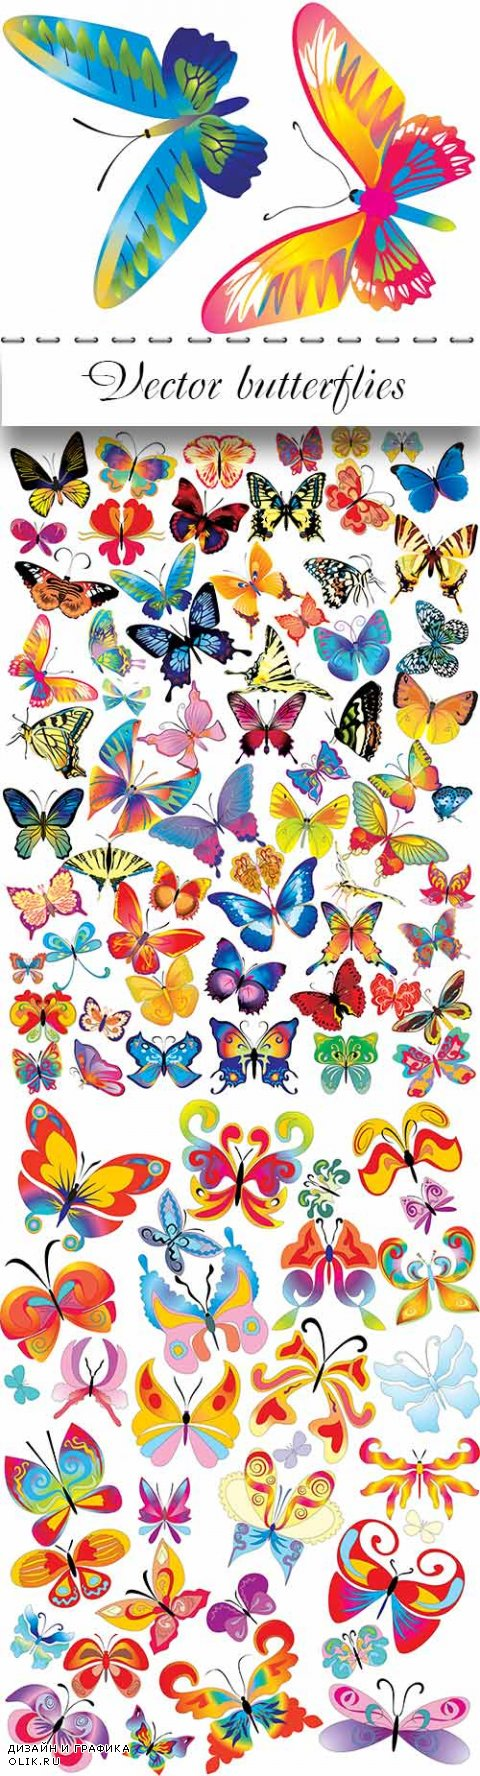 Vector butterflies for design